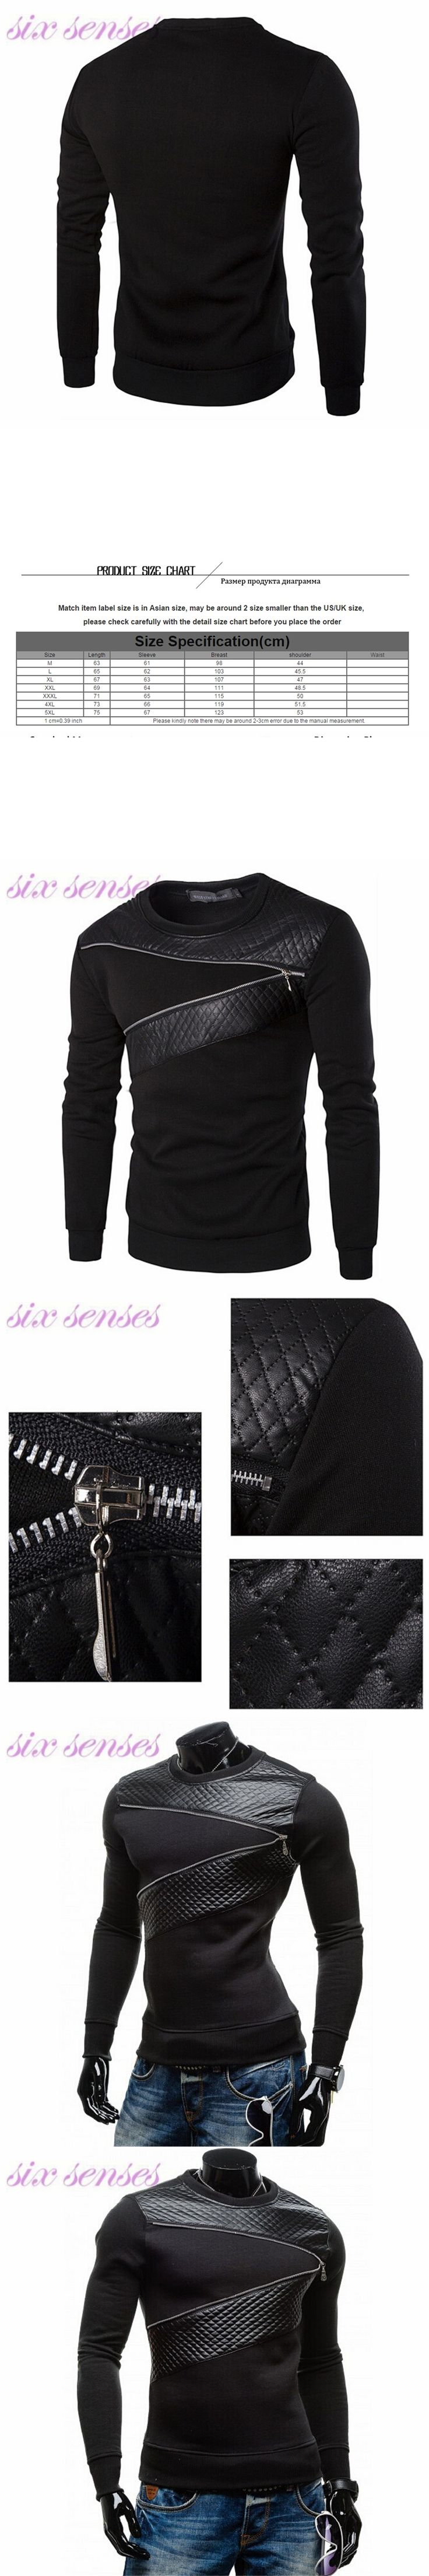 5XL European casual men hoodies new autumn fashion slim pullover patchwork leather zipper men sweatshirt plus size,WH0050